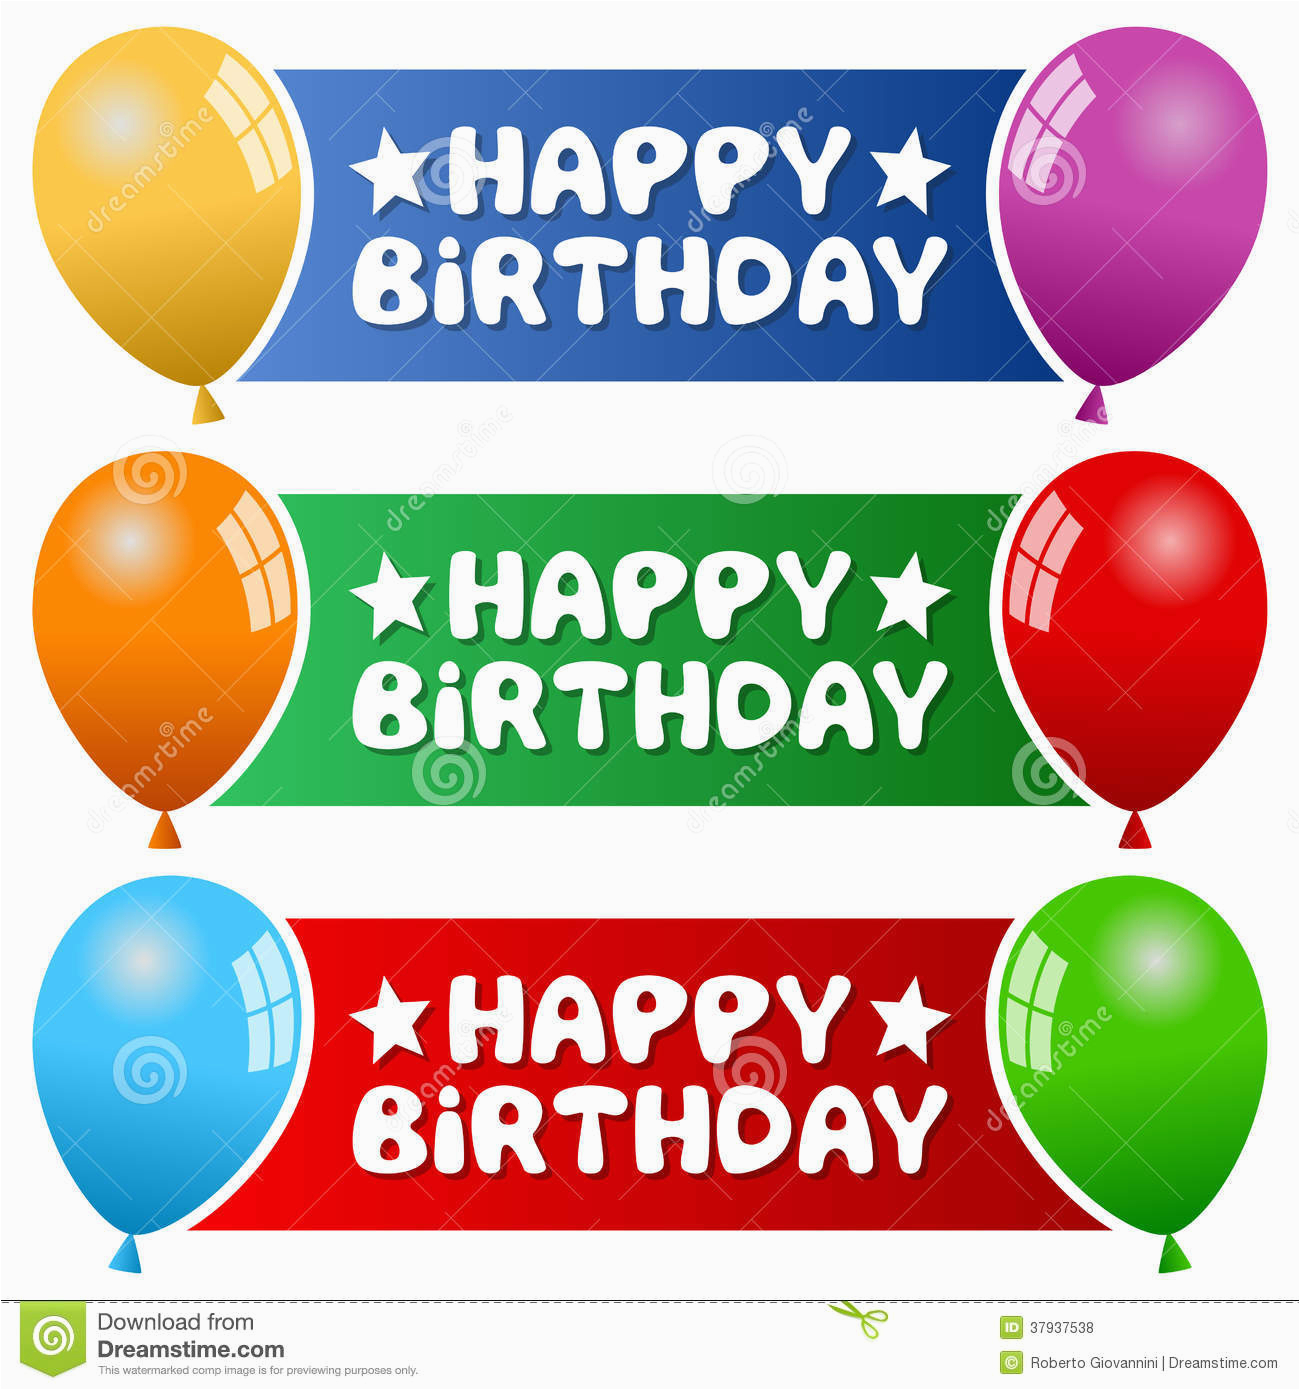 royalty free stock photos party balloons horizontal banners collection three happy birthday colorful blue green red background eps file image37937538